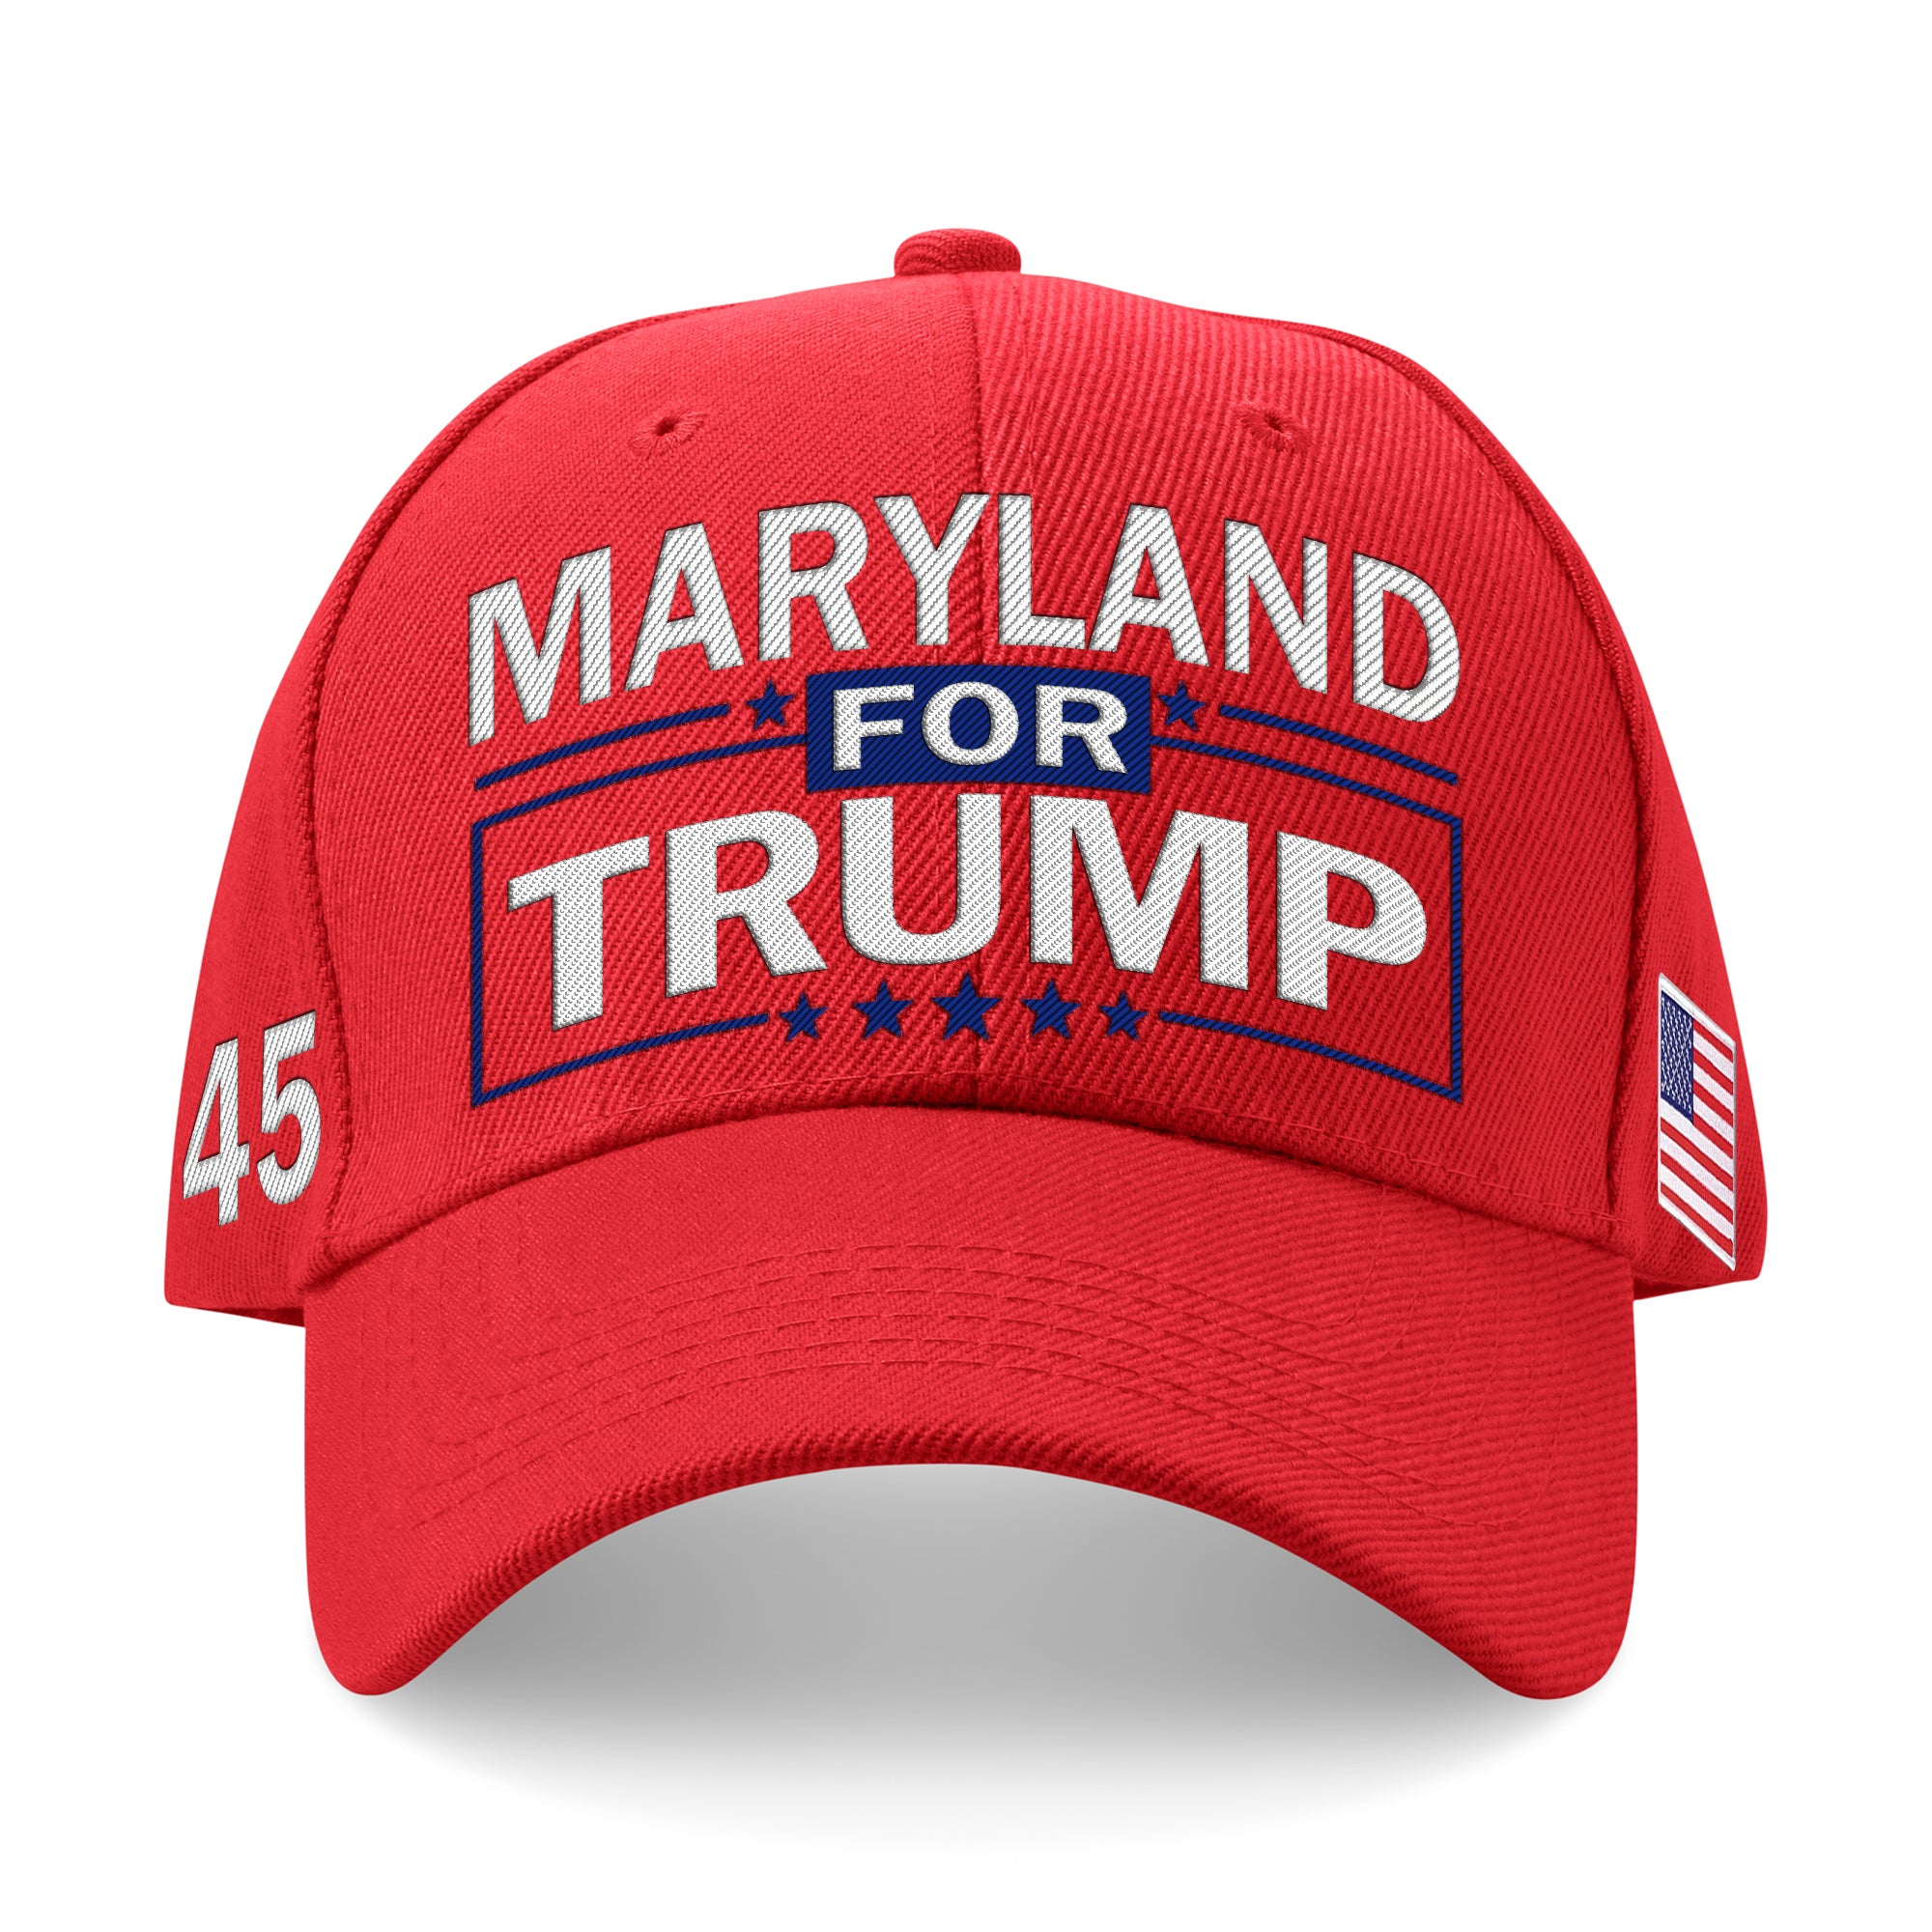 Maryland For Trump Limited Edition Embroidered Hat